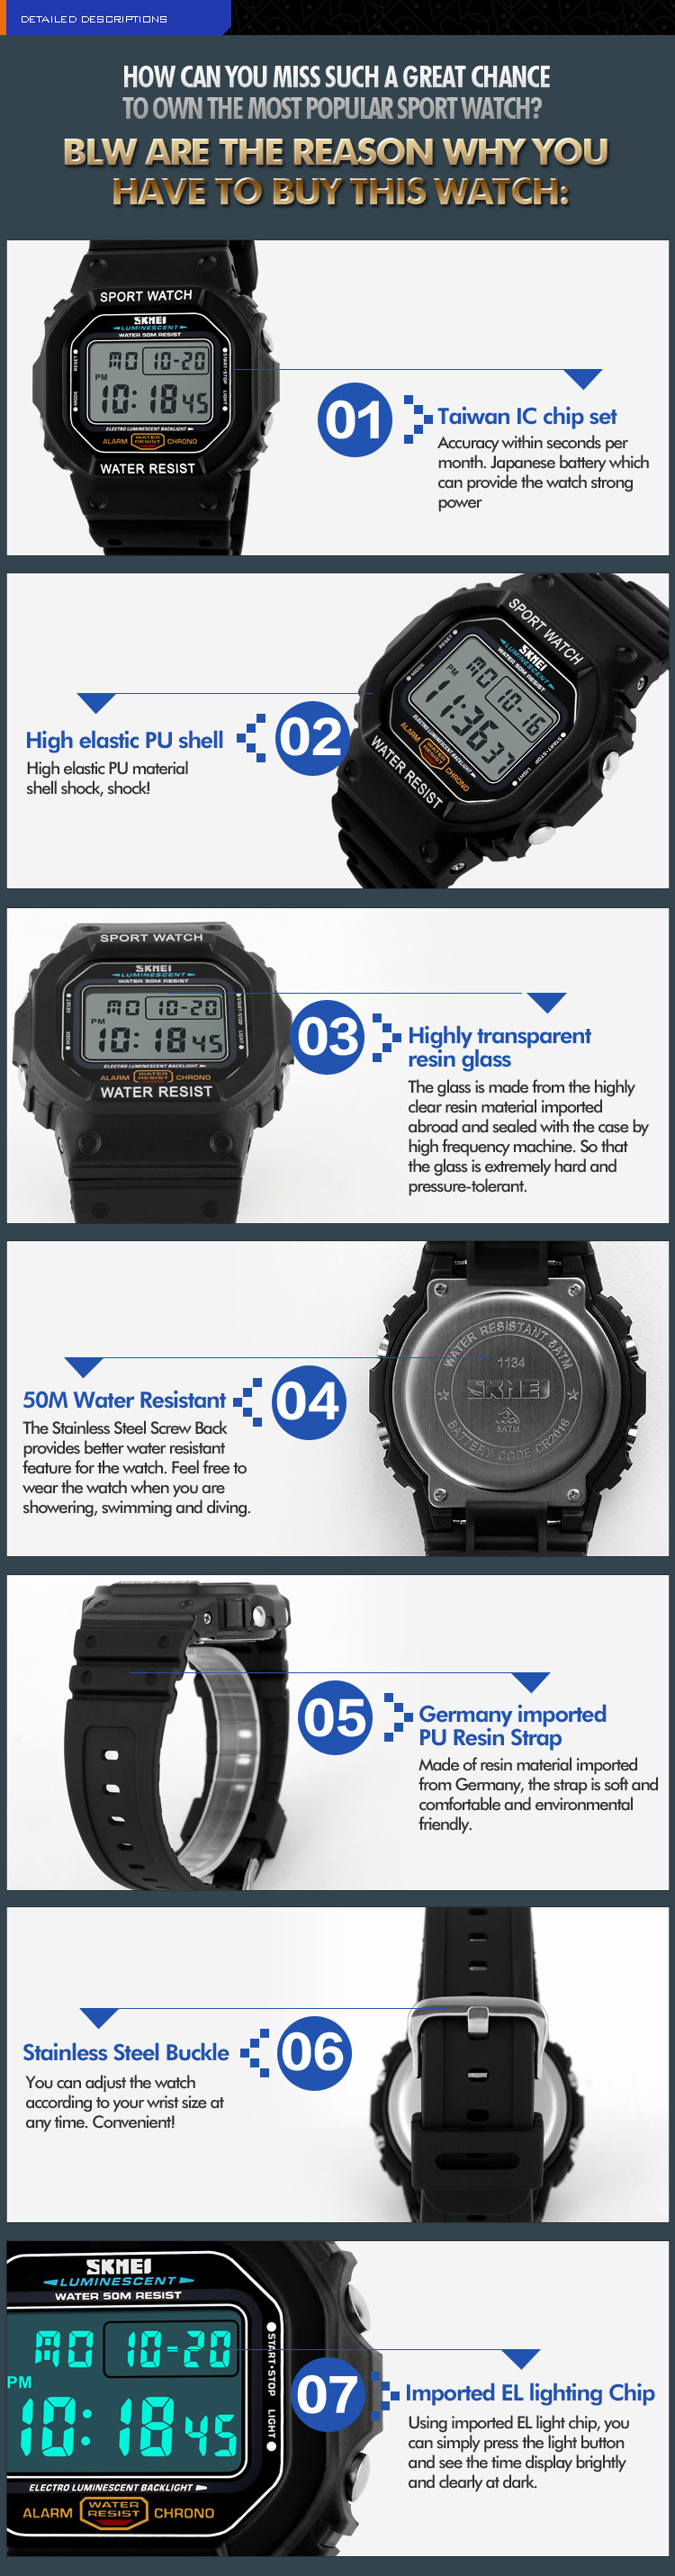 2017 Relogio Masculino Men Sports Watches Fashion Outdoor Clock Led Skmei S Shock Sport Watch Water Resistant 50m Dg1025 11341 11342 11343 11344